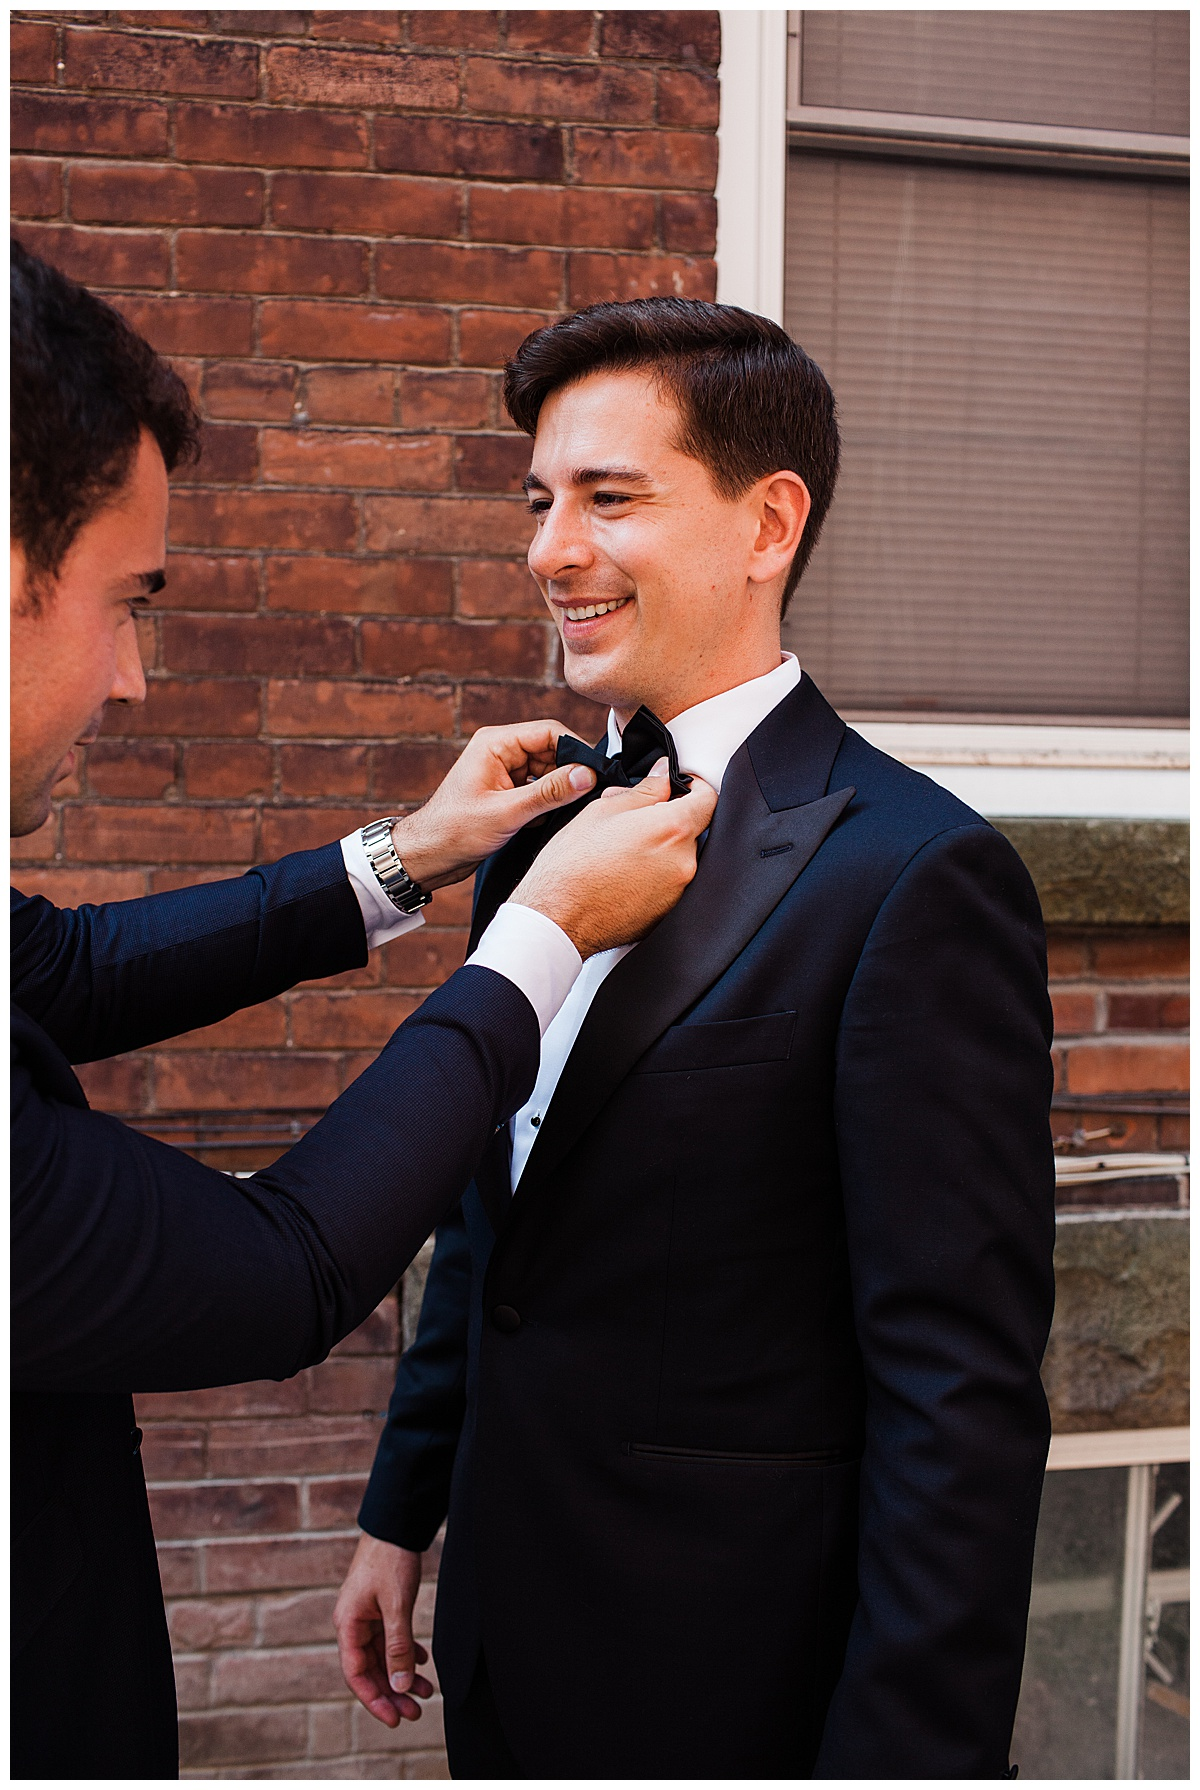 Groom smiling while his bowtie is adjusted for Ontario wedding  Toronto wedding photographer  3photography